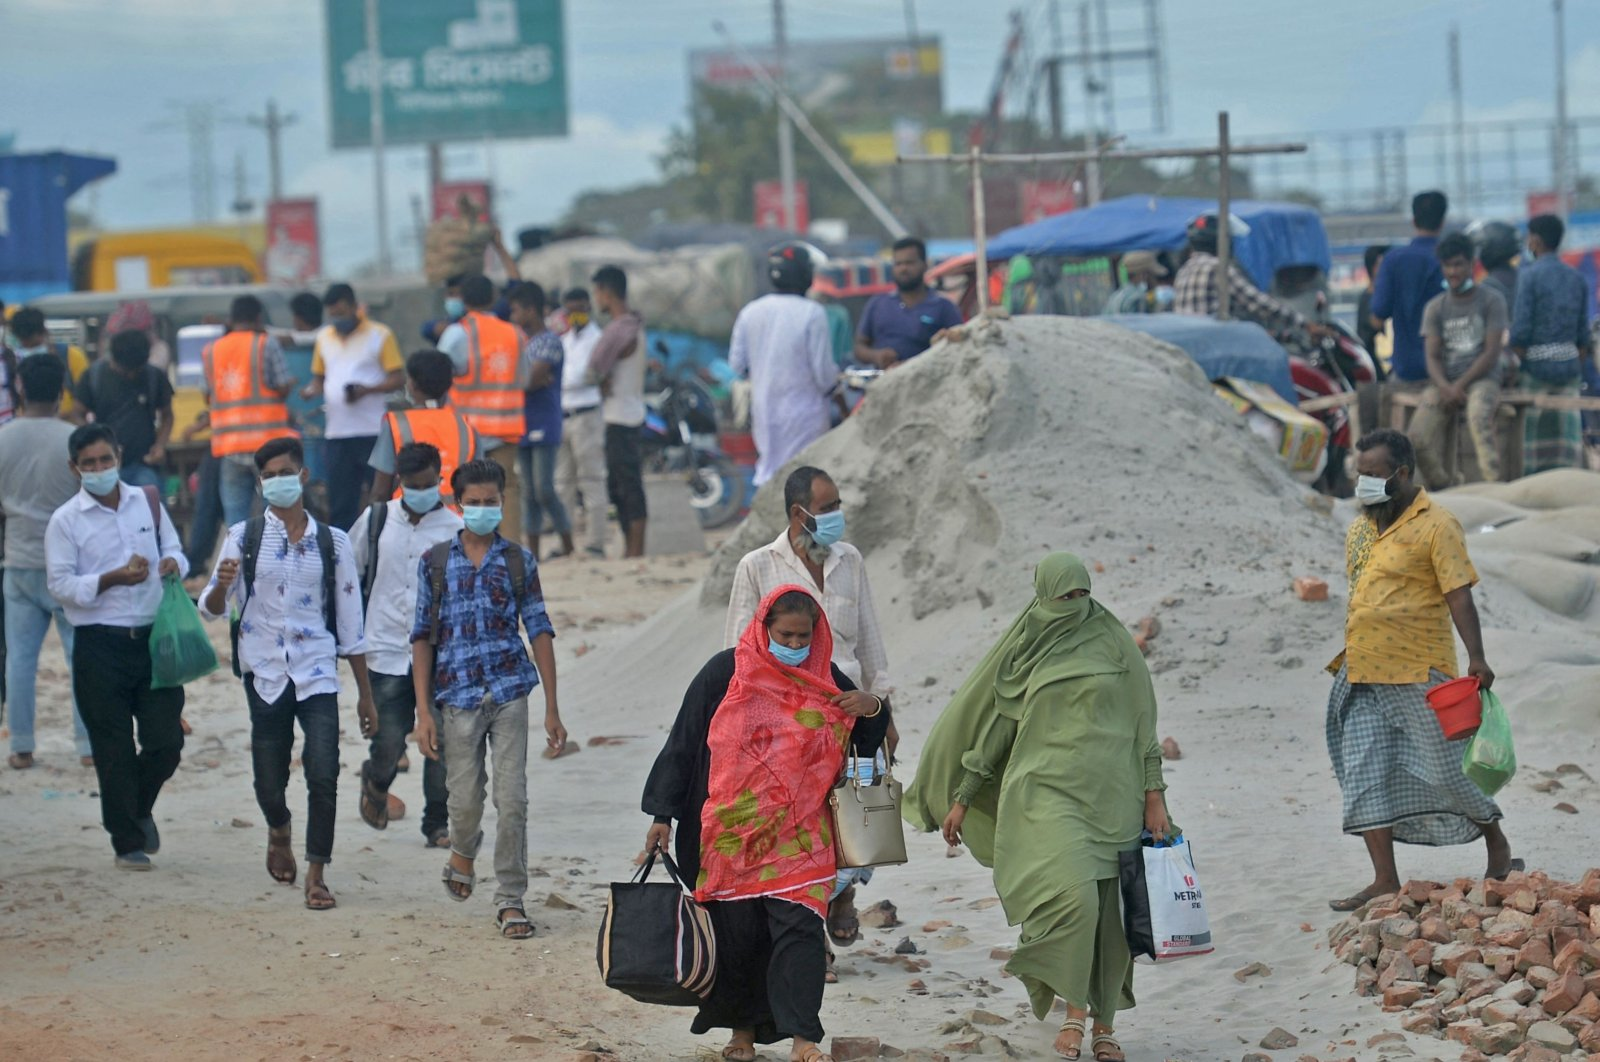 People walk to board a ferry to their hometowns after the government eased a lockdown imposed as a preventive measure against the COVID-19 coronavirus ahead of the Muslim festival of Eid al-Adha in Sreenagar, Bangladesh, July 13, 2021. (AFP Photo)